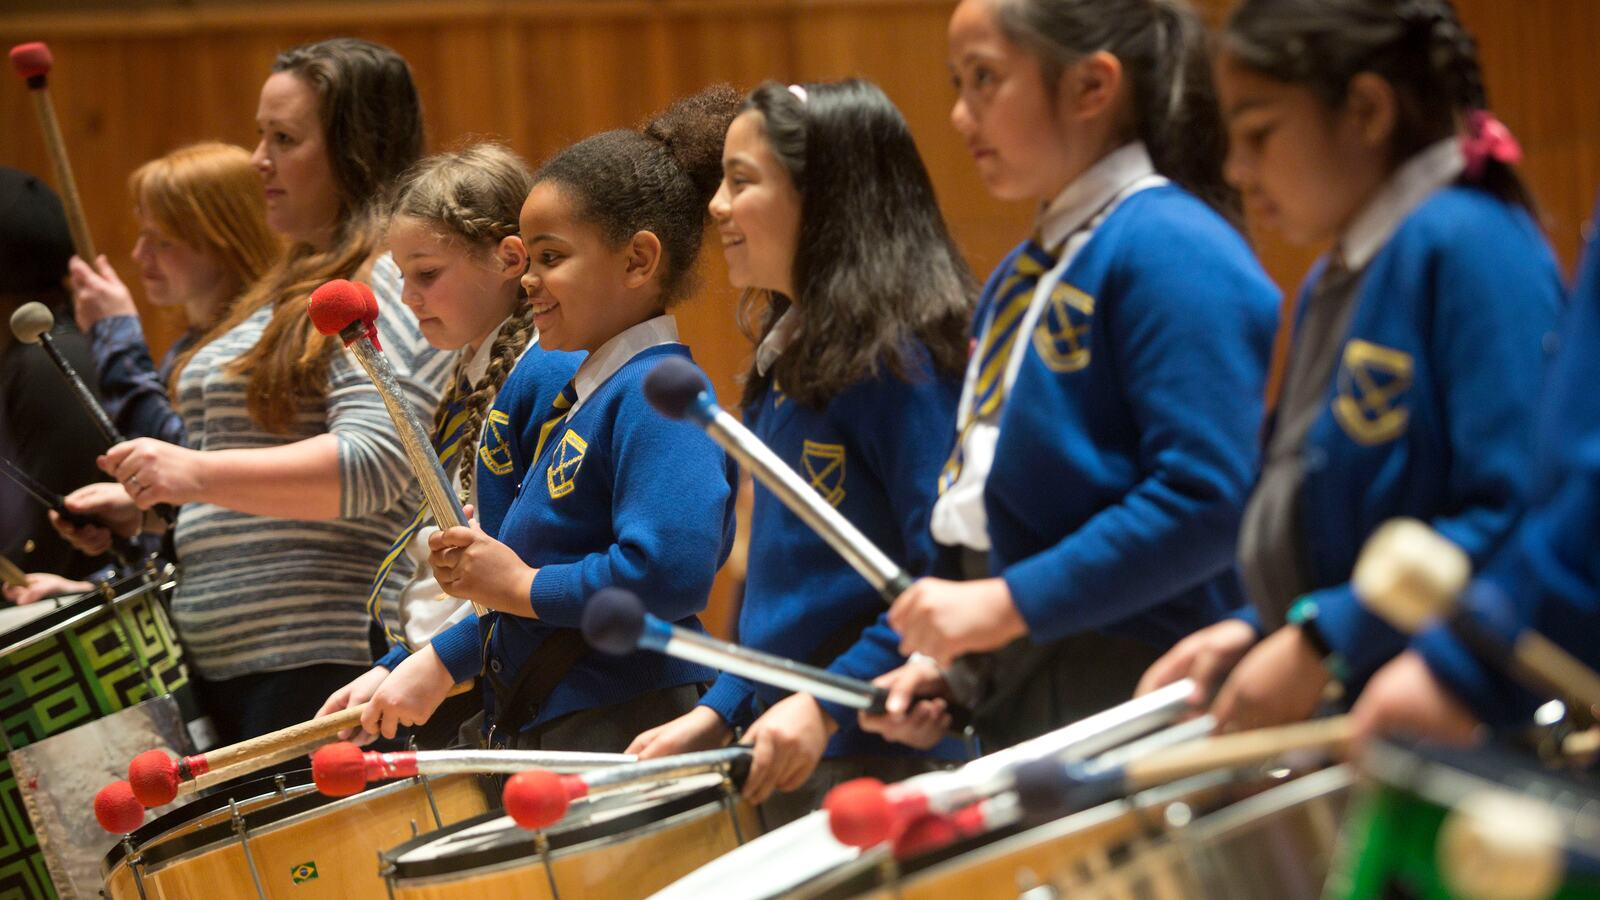 Children playing drums in Royal Festival Hall